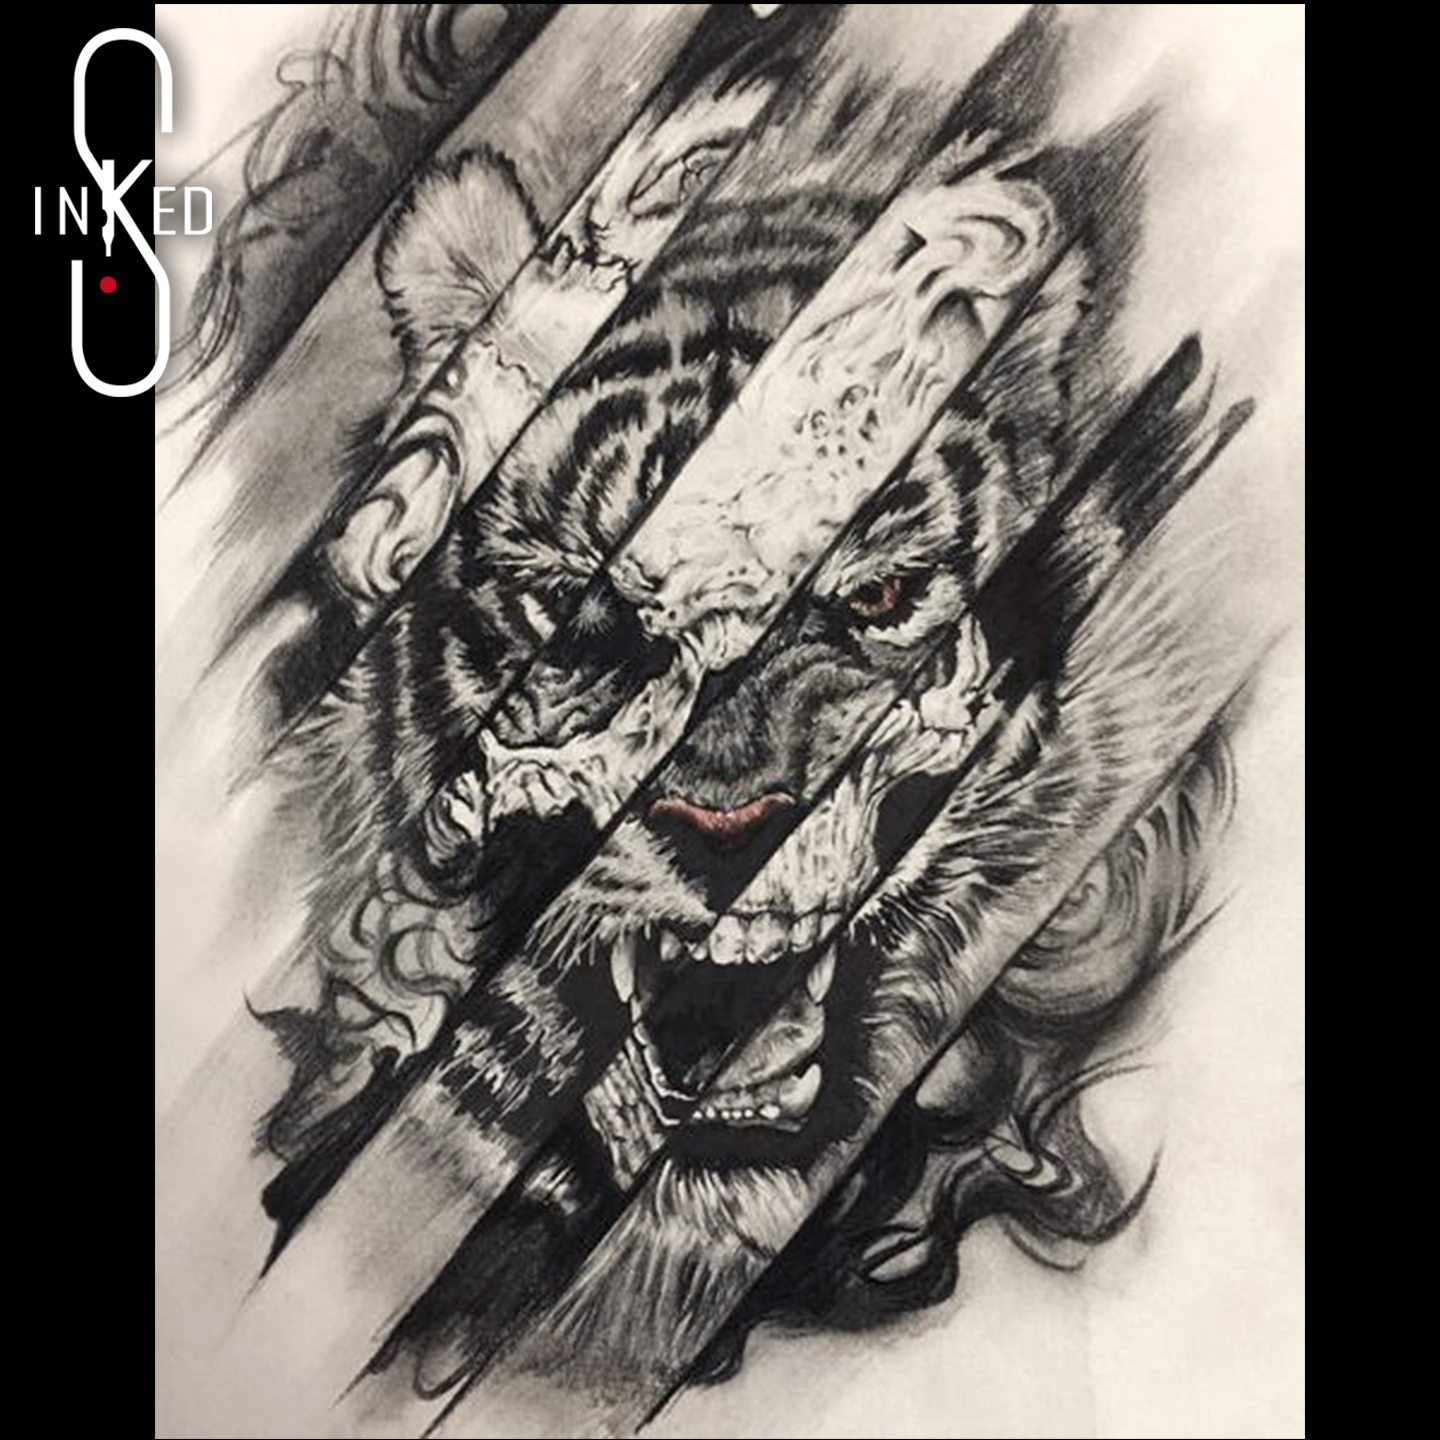 INKED S TATTOO ARTWORK